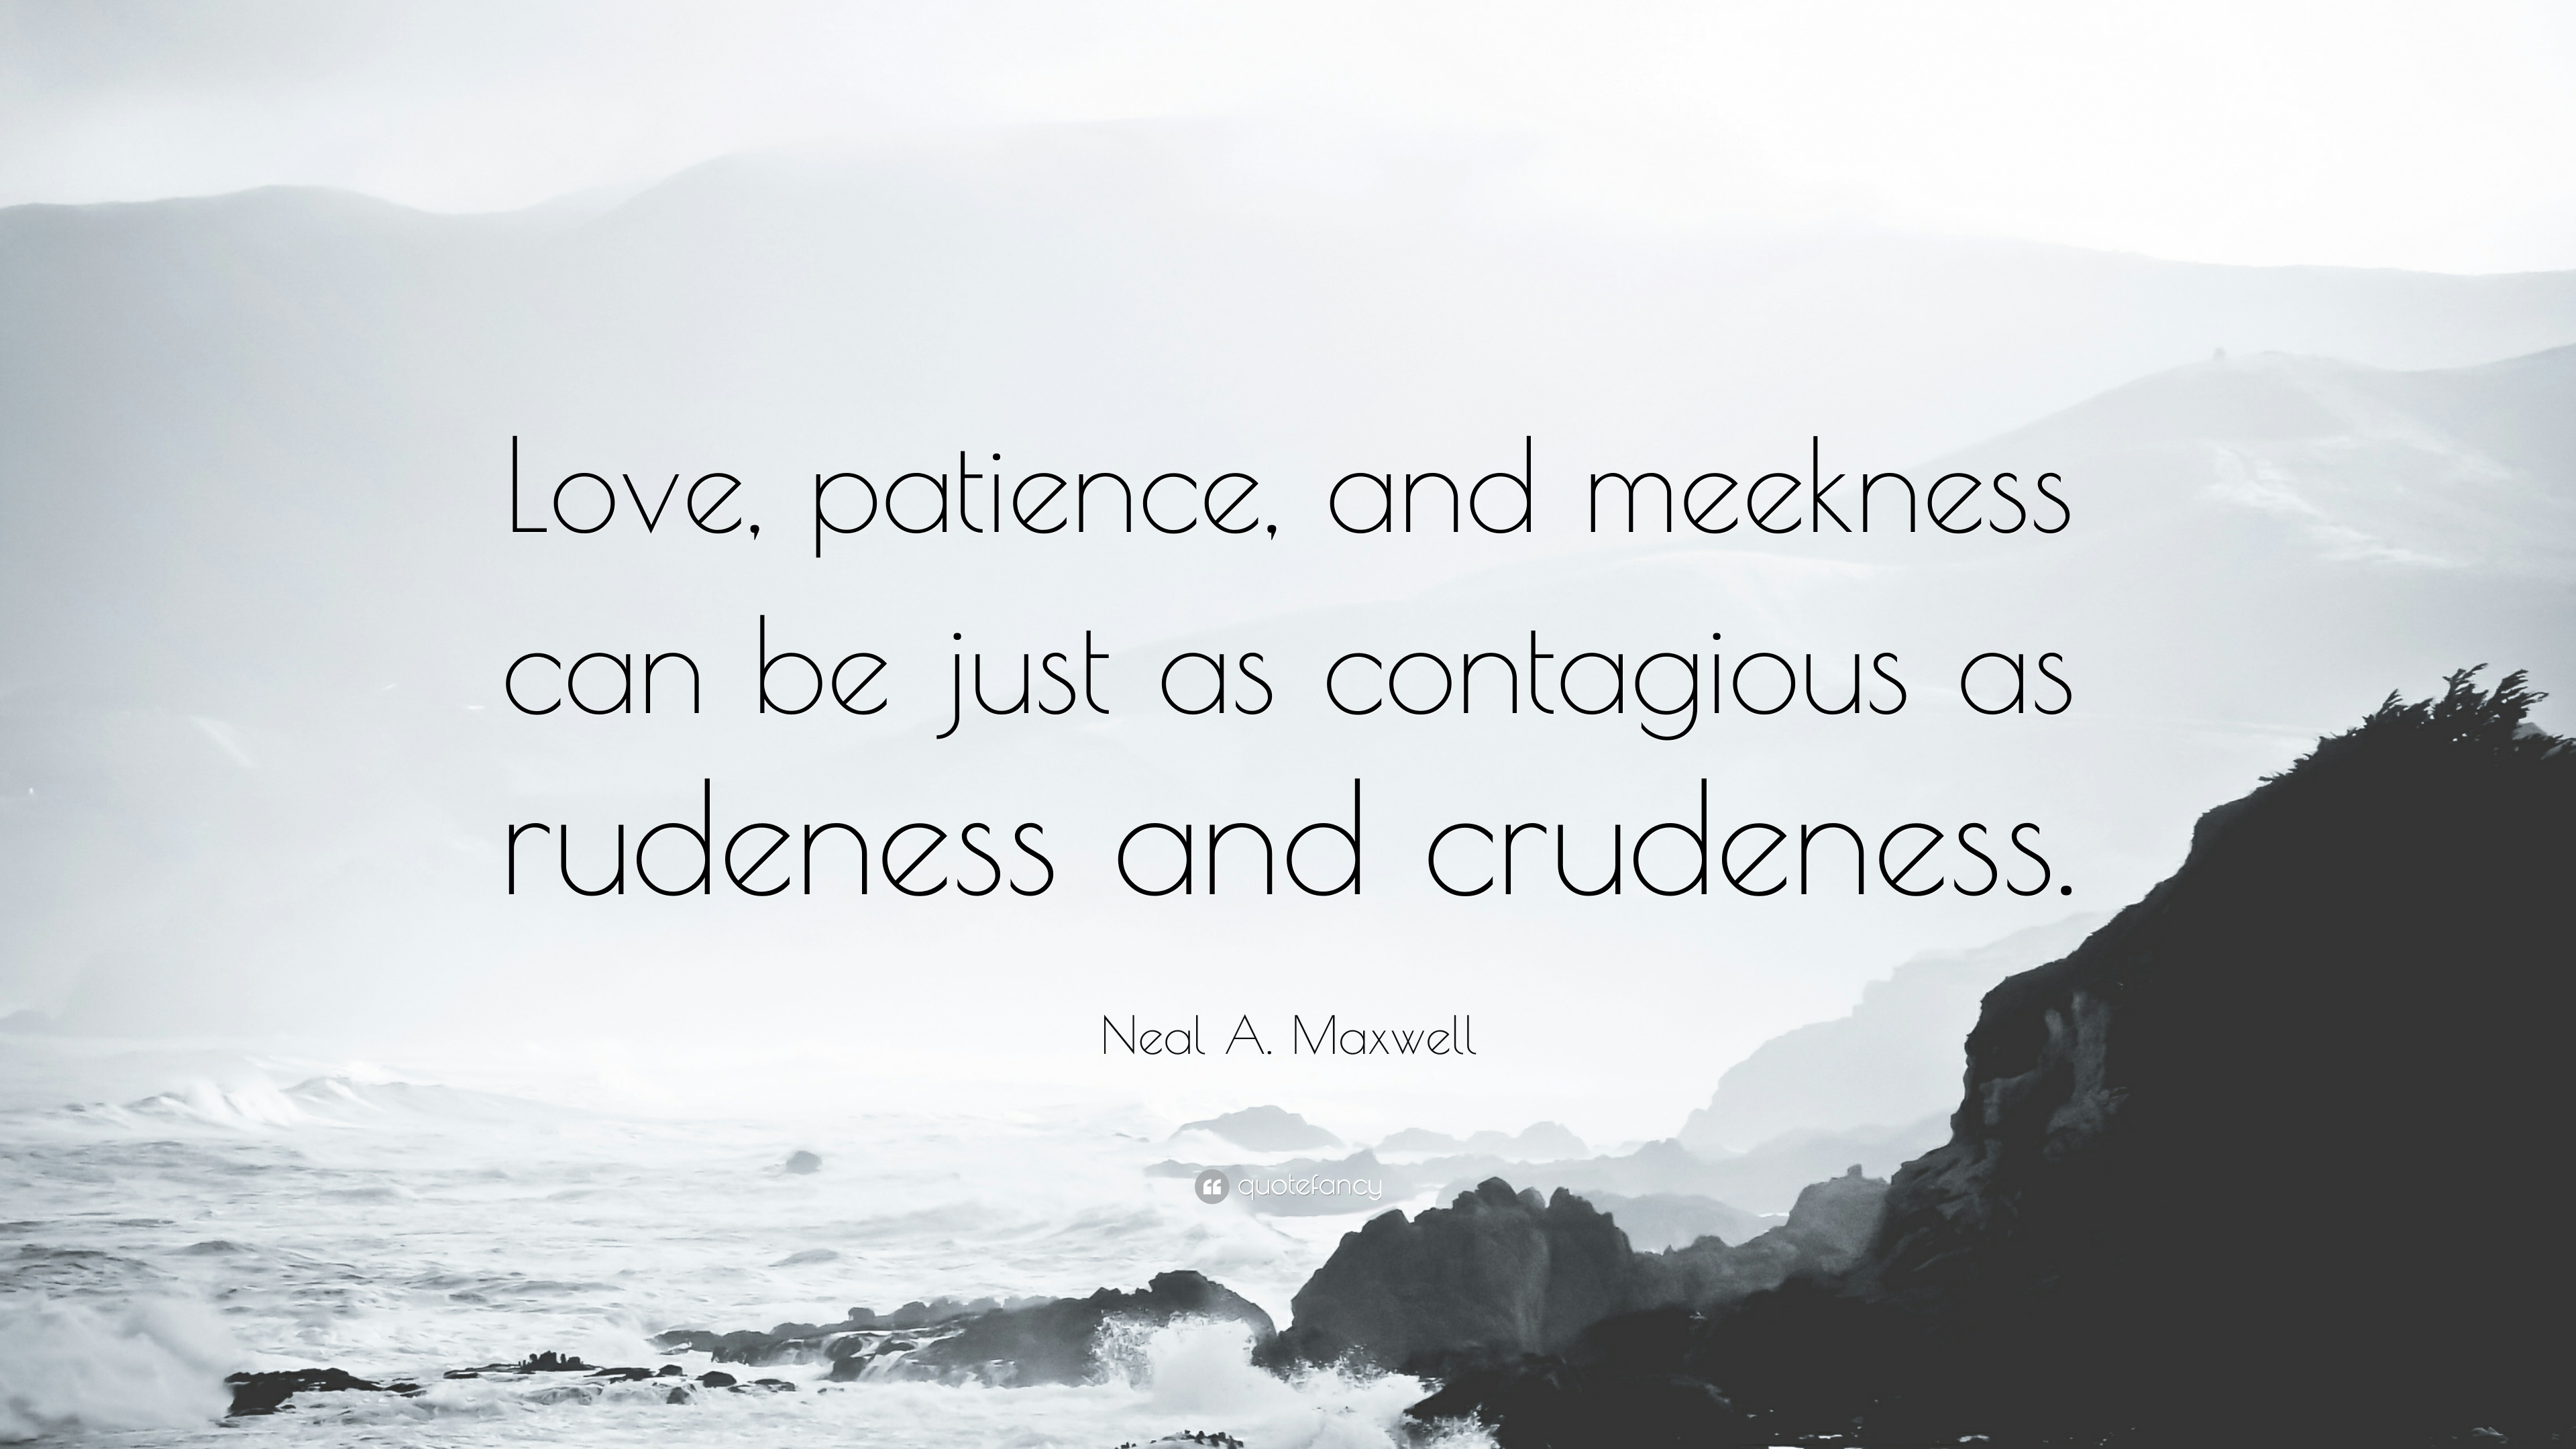 Neal A Maxwell Quote Love Patience And Meekness Can Be Just As